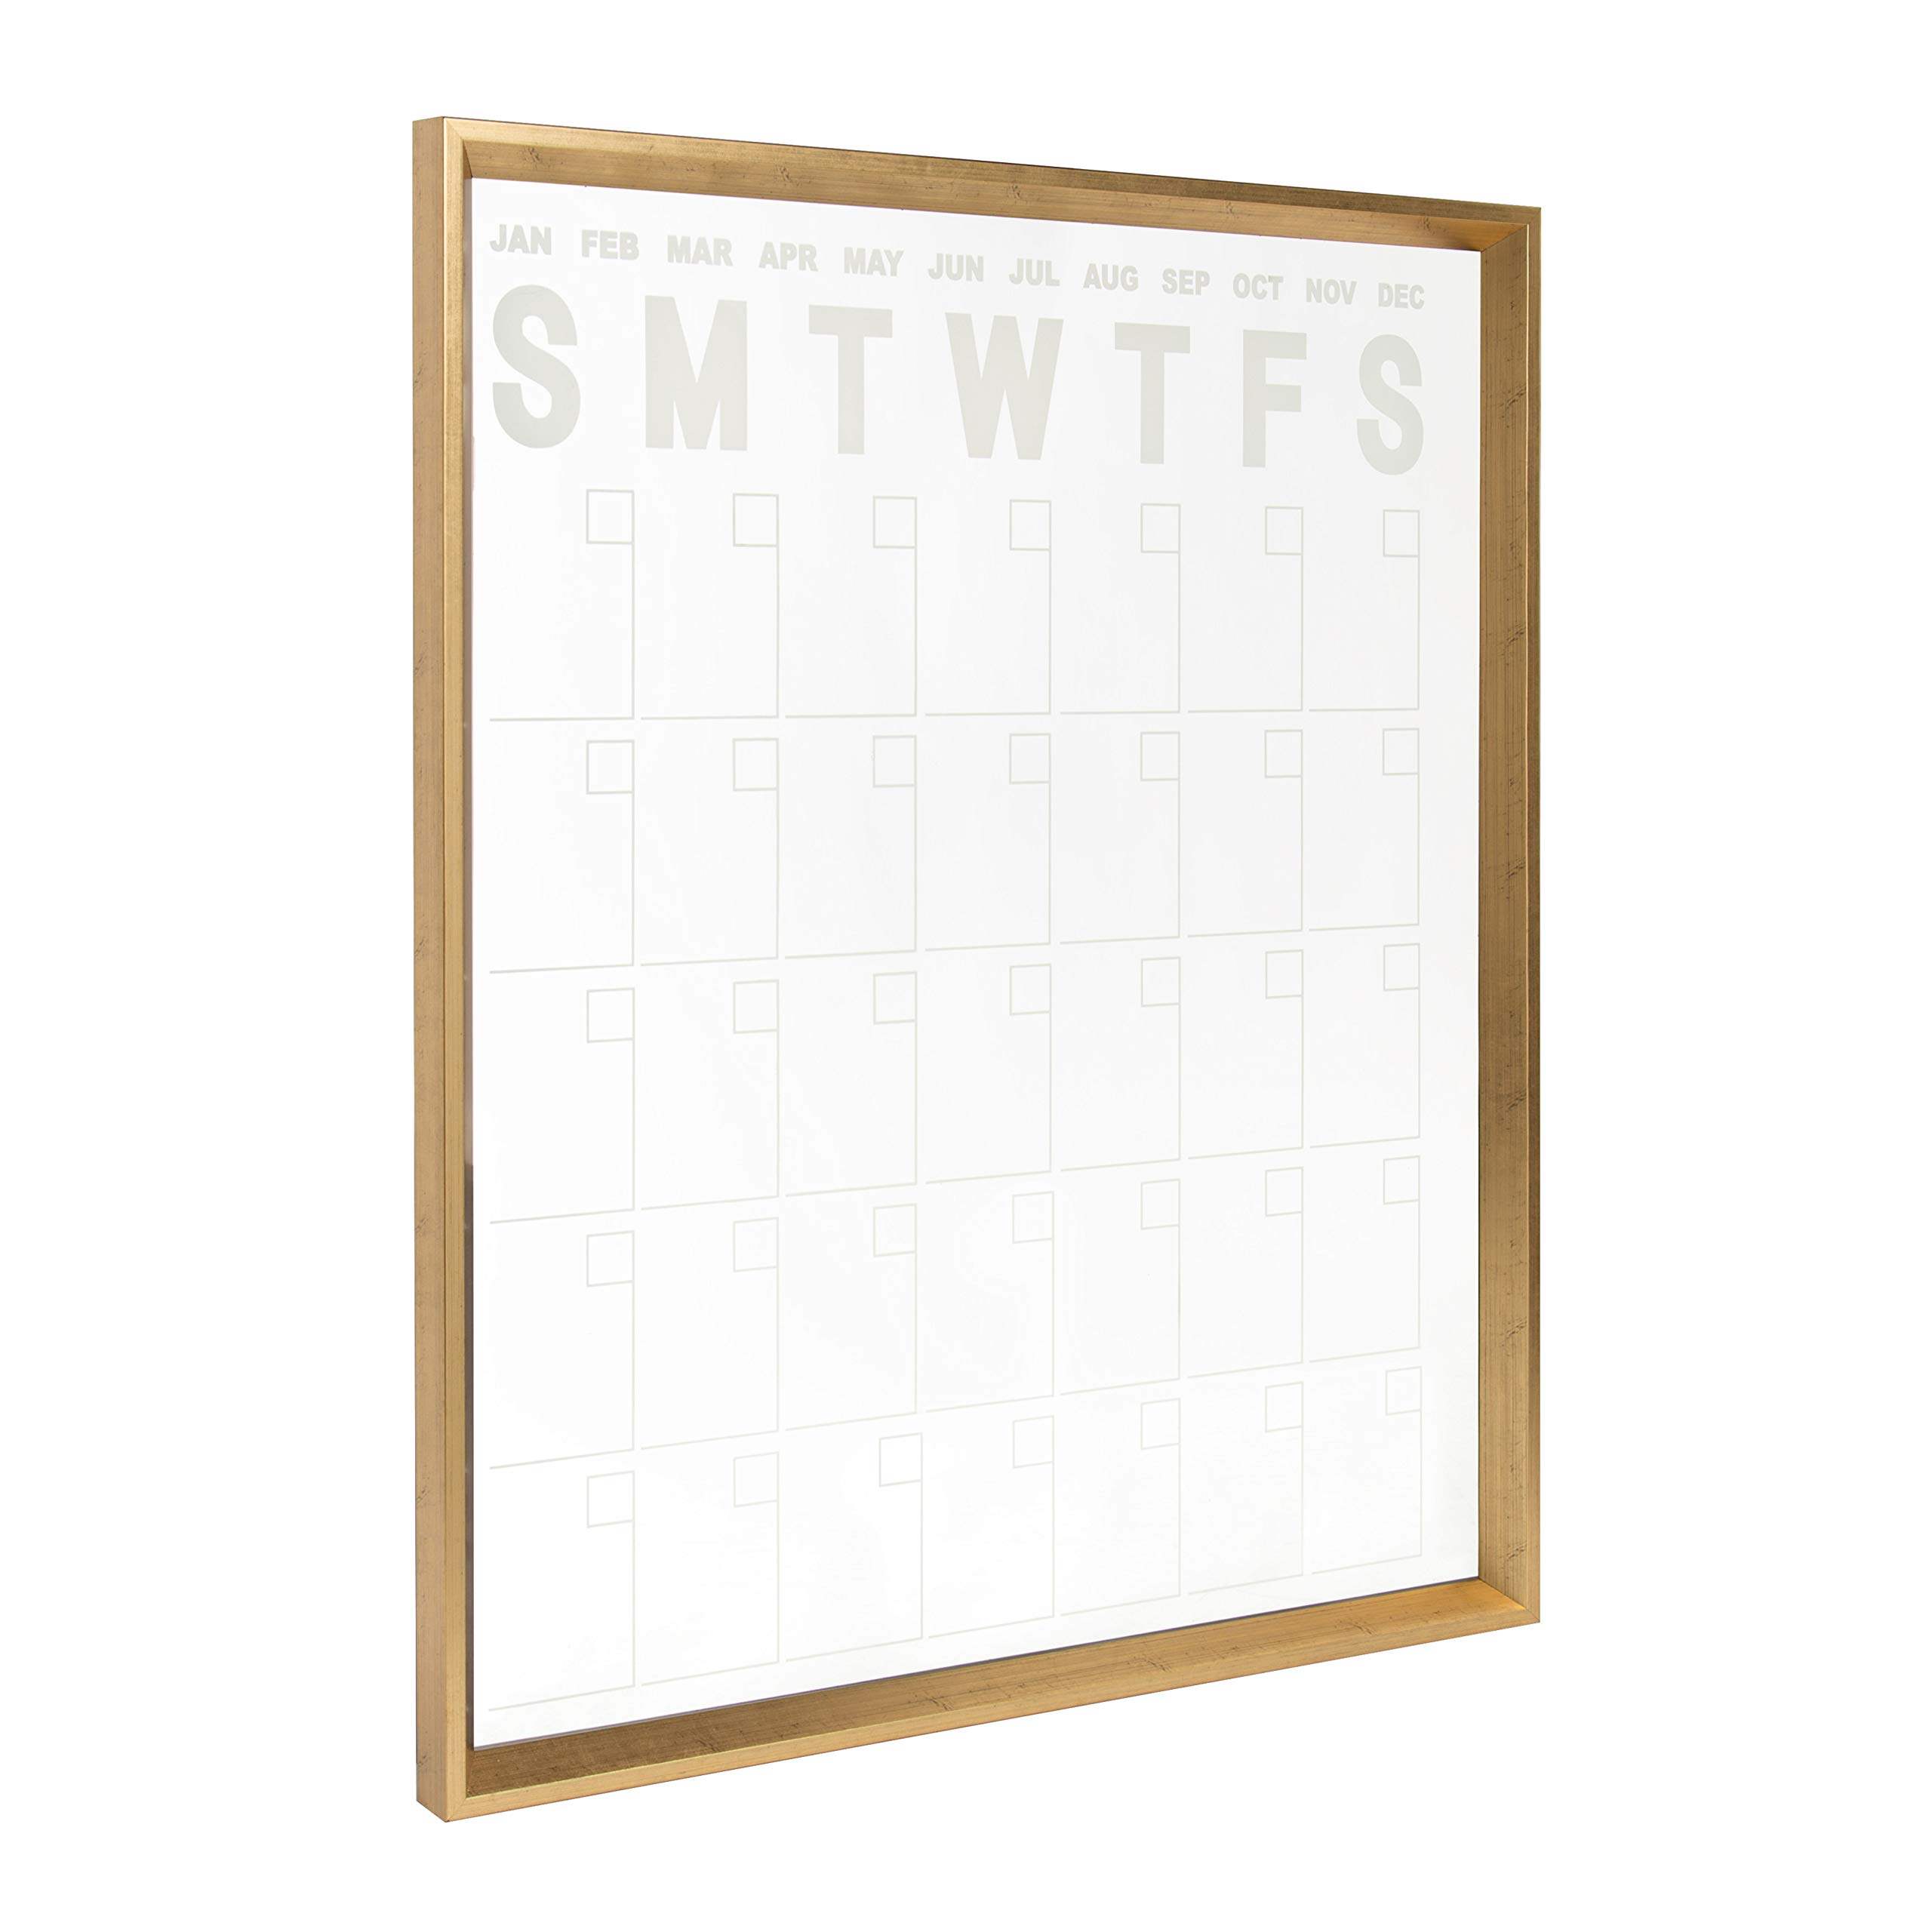 Kate and Laurel Calter Erasable Acrylic Monthly Wall Calendar, 25.5x31.5, Gold by Kate and Laurel